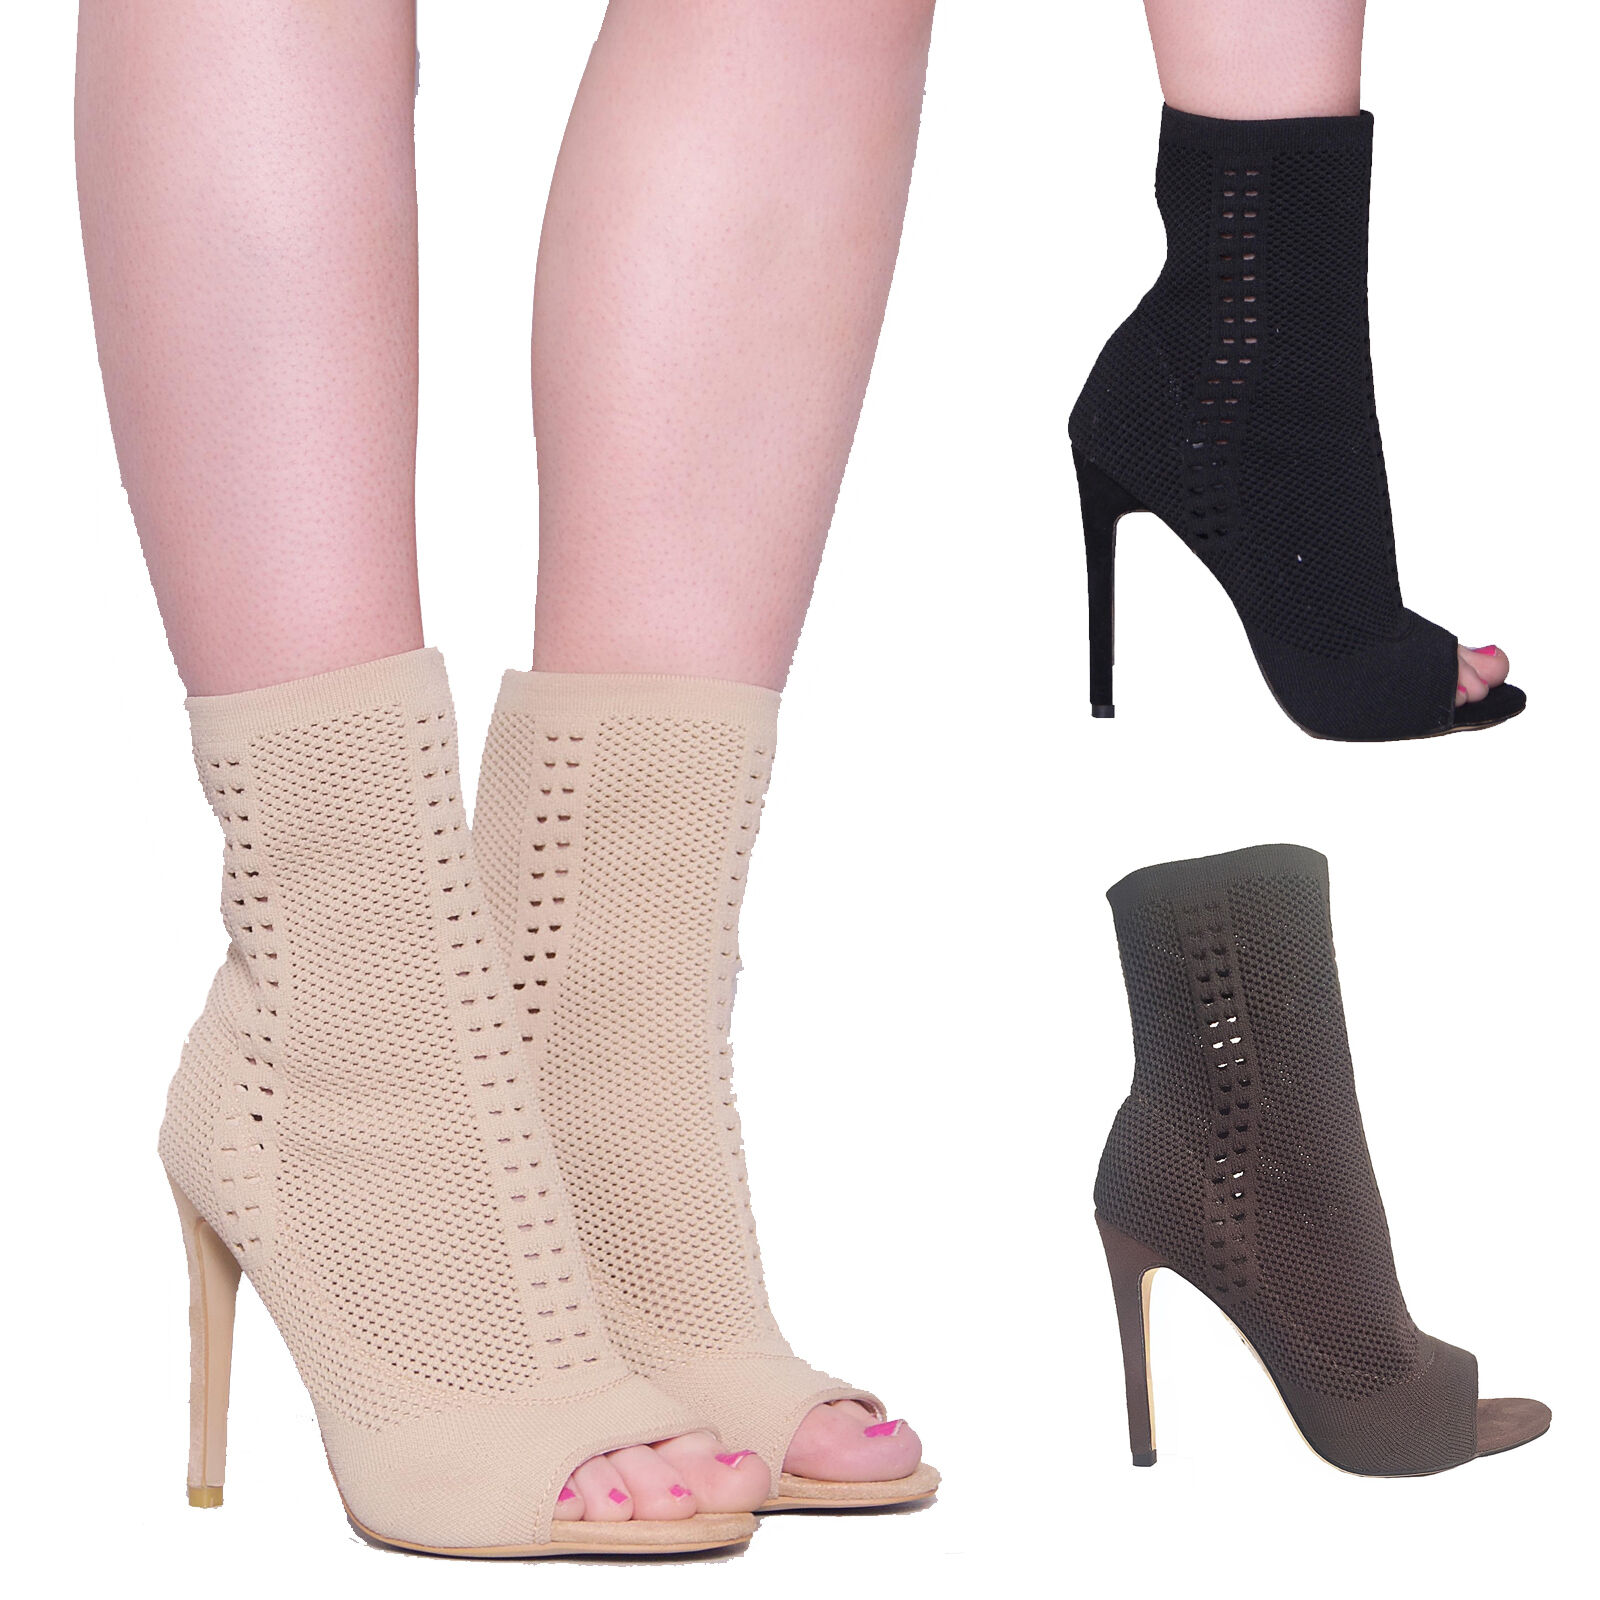 Womens Ladies Stiletto High Heel Fashion Ankle Boots Knit Stretch  Peep Toe Size